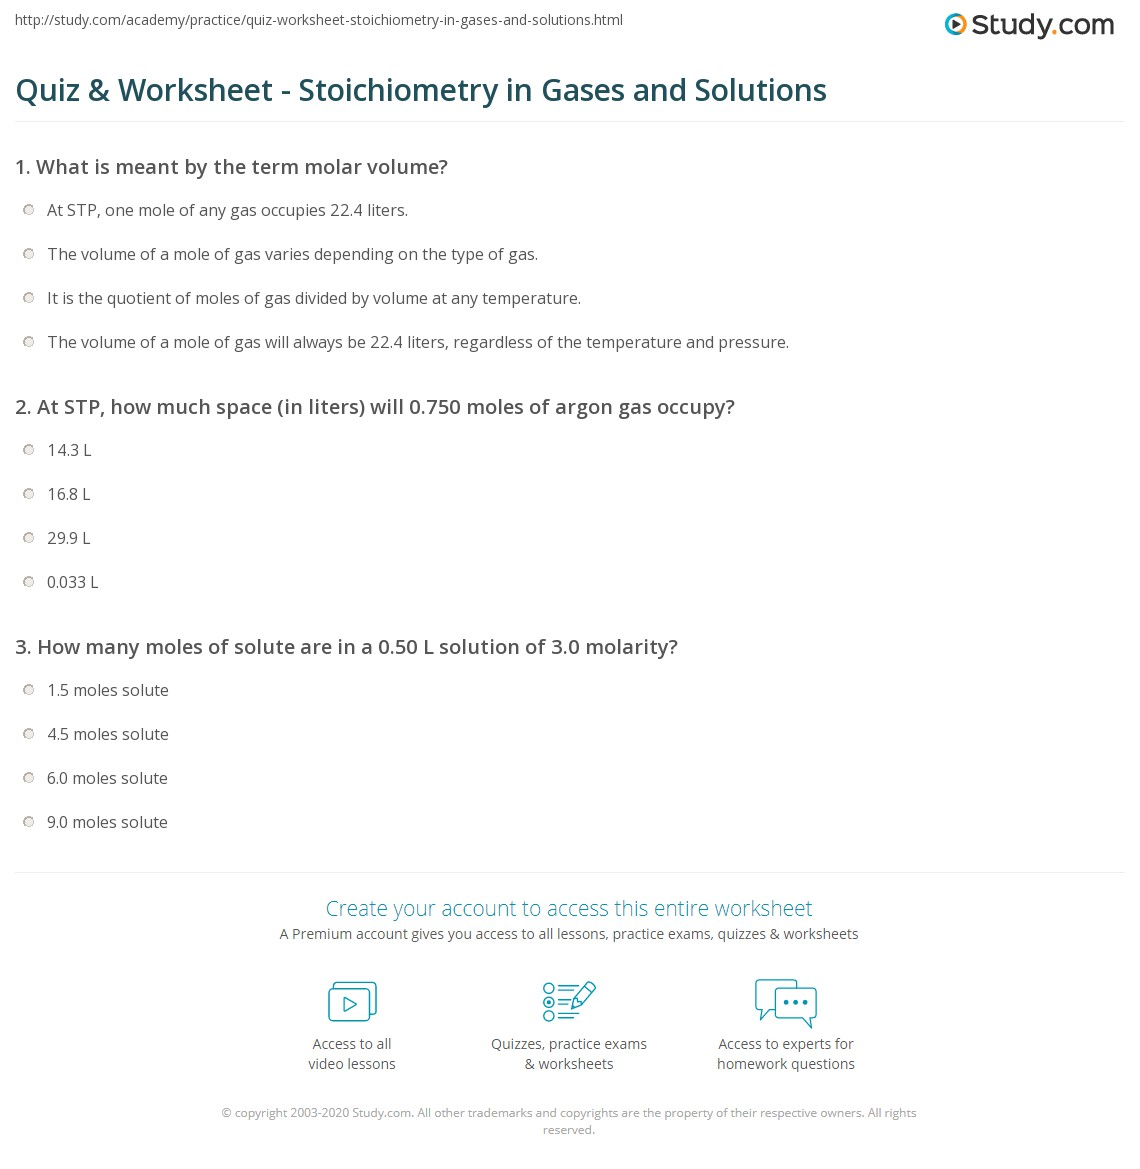 Quiz & Worksheet - Stoichiometry in Gases and Solutions | Study.com